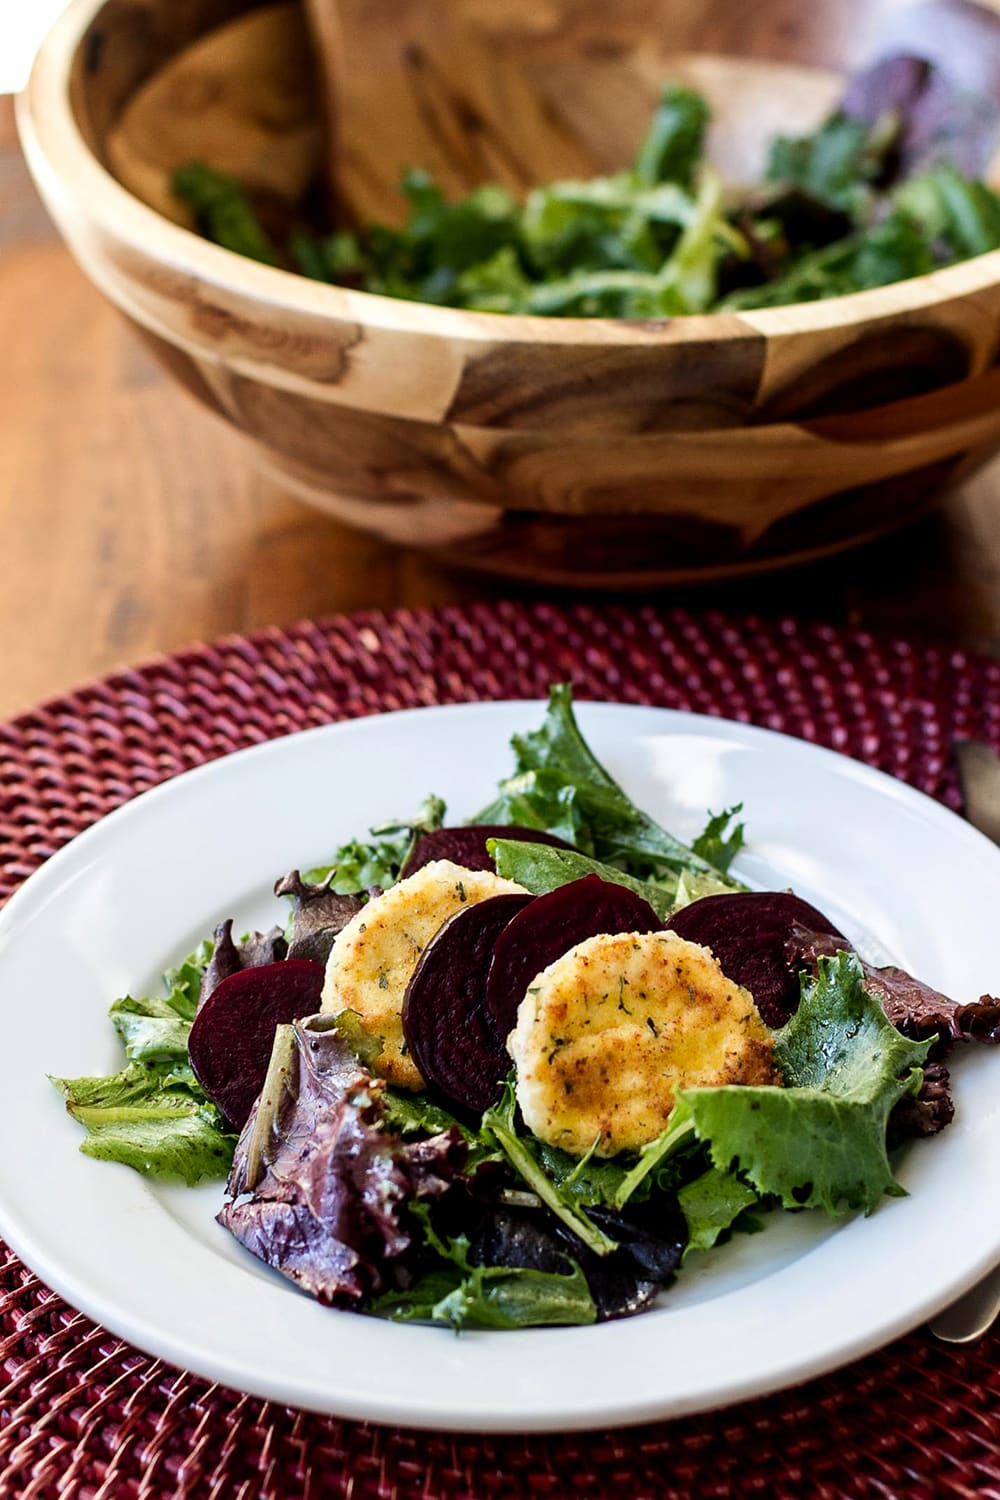 Roasted Beet and Goat Cheese Salad on a plate